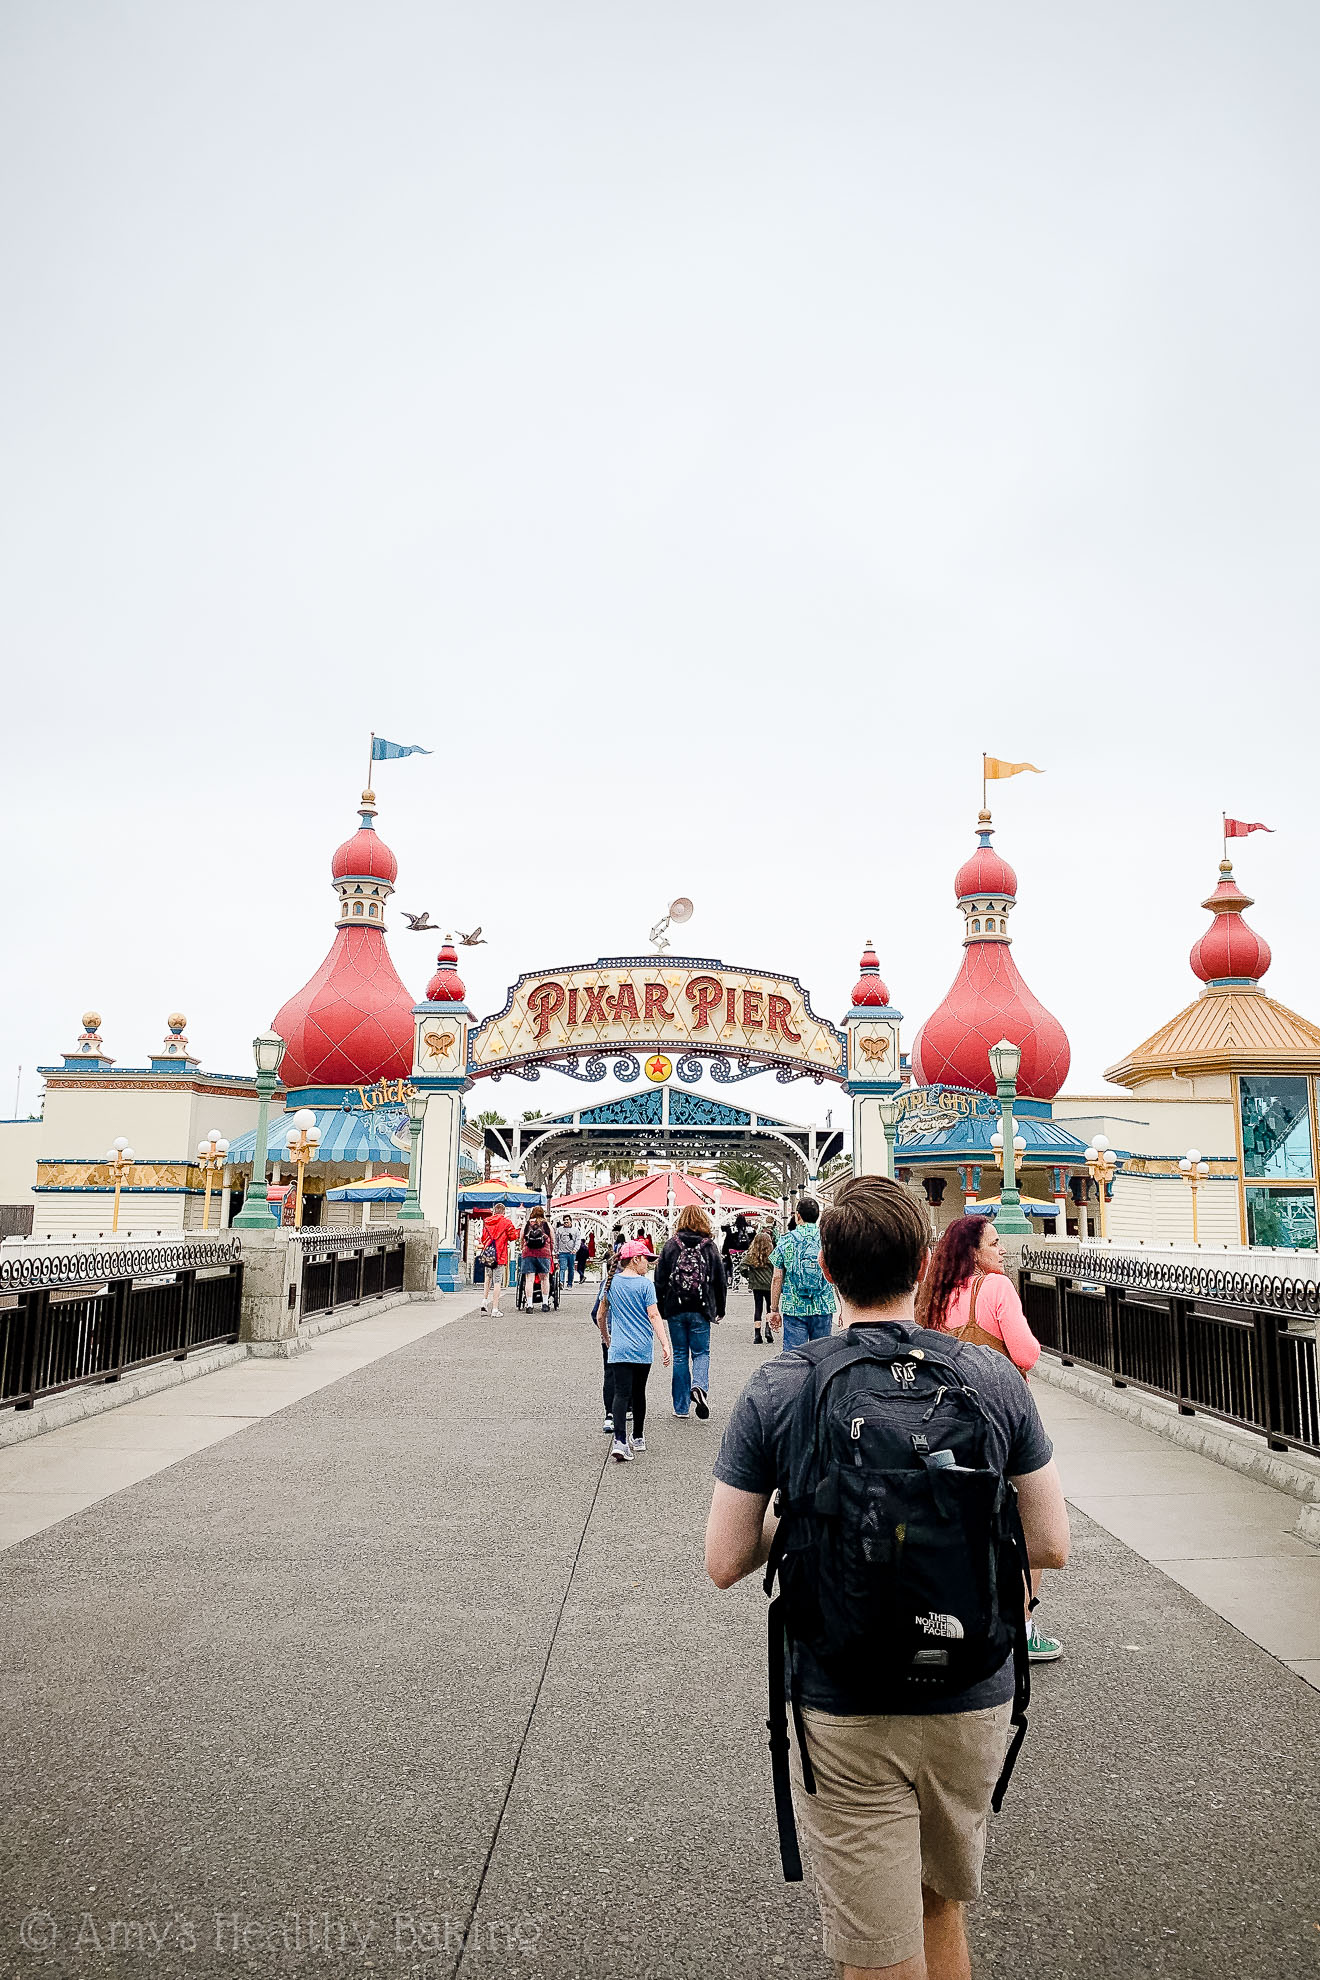 The entrance to Pixar Pier in California Adventure